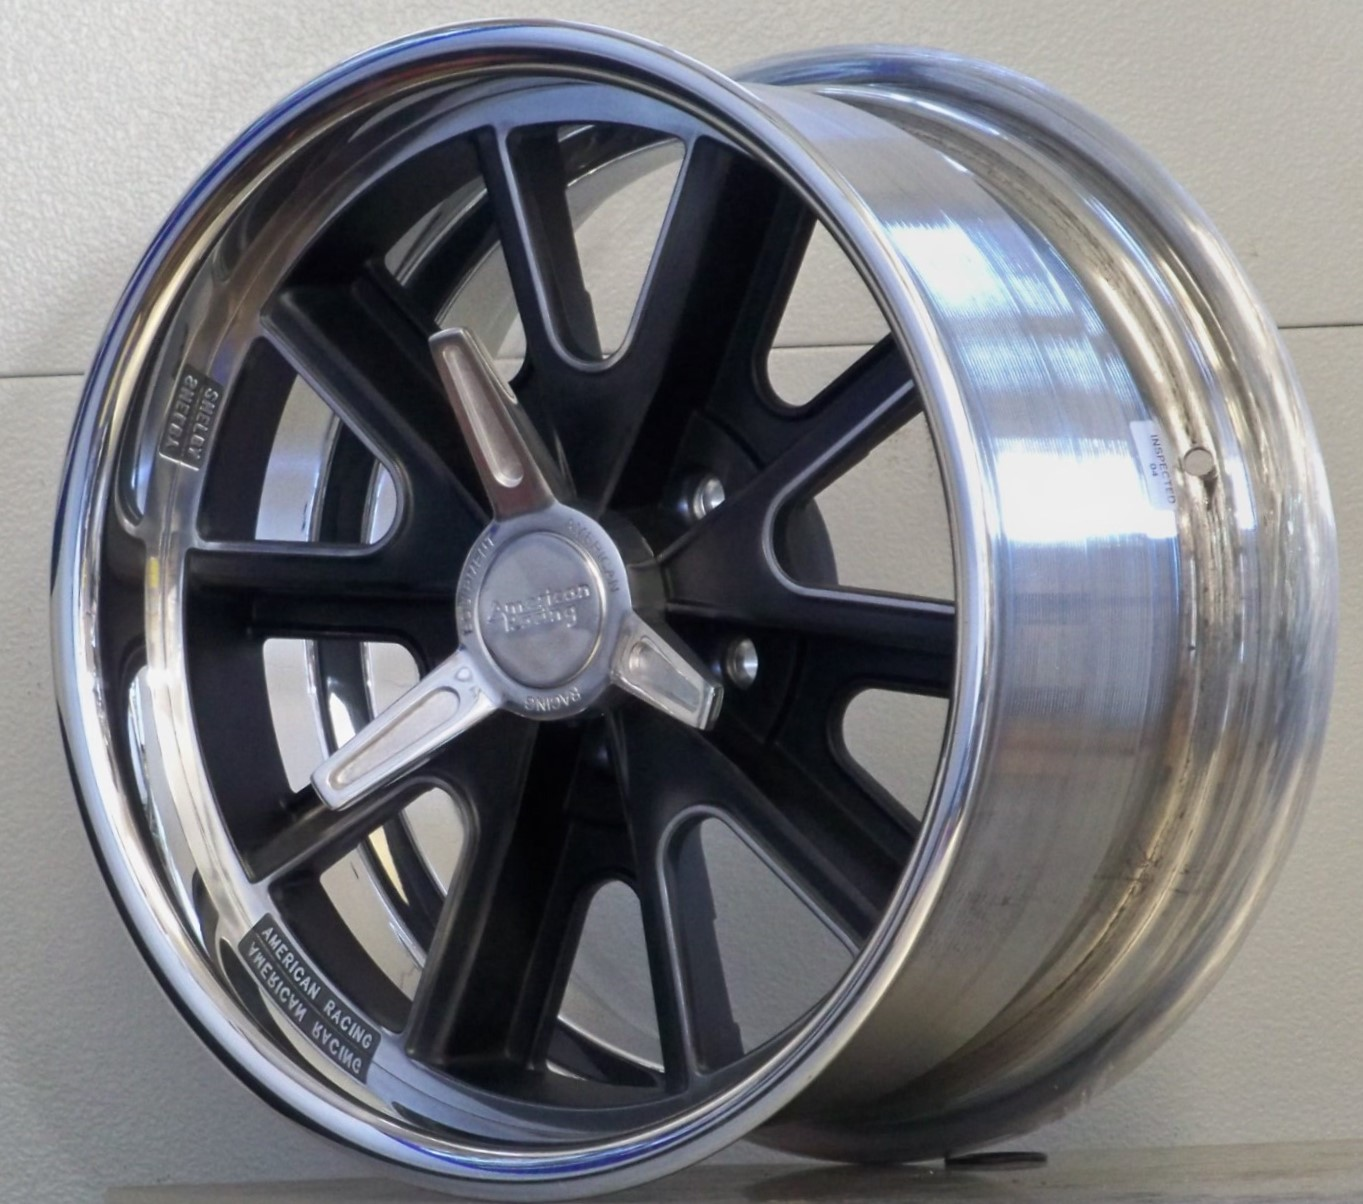 2005 Mustang Wheels >> 2005 2014 Vintage Wheels Mustang Hot Rod And Muscle Car